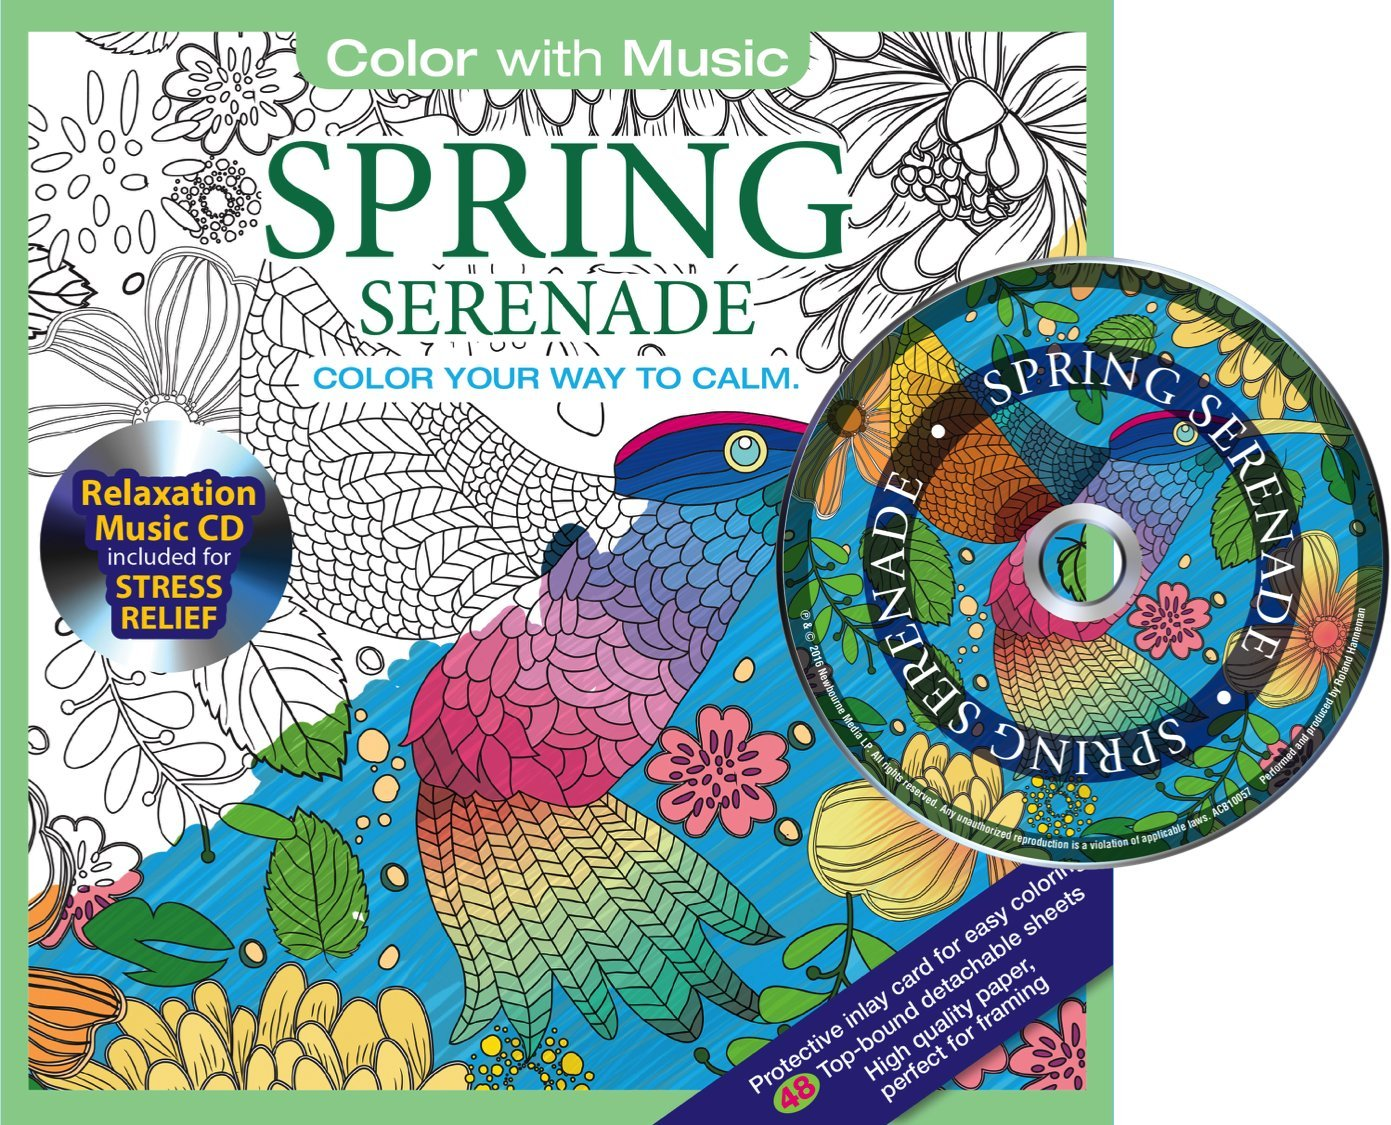 Download Spring Serenade Adult Coloring Book With Bonus Relaxation Music CD Included: Color With Music PDF